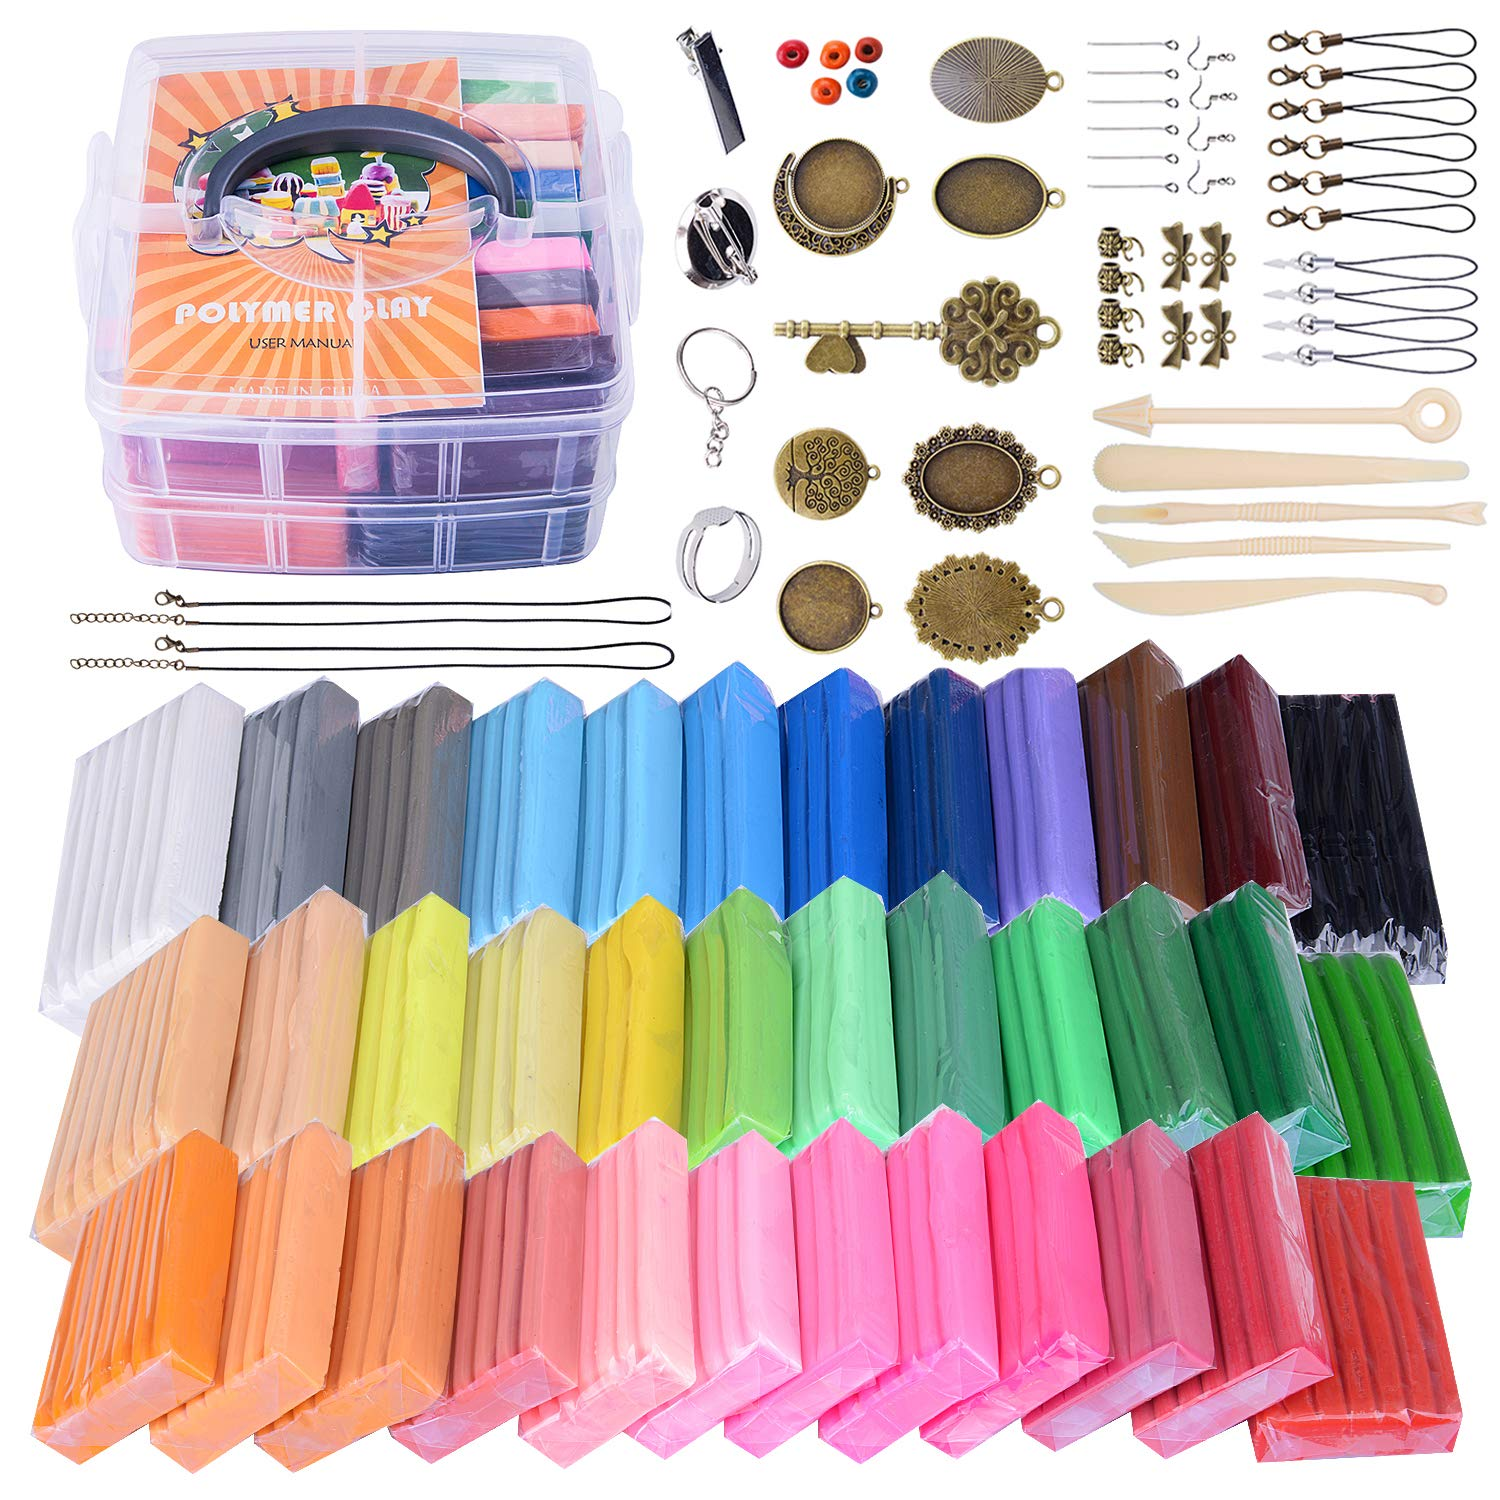 Polymer Clay Set, 36 Colors 1.4 oz/Block Oven Baking Clay Starter Kit with Plastic Tote, 5 Sculpting Tools and 51 Jewelry Findings, Safe Nontoxic DIY Clay Crafts Gift by GiftedMary (36 Colors)